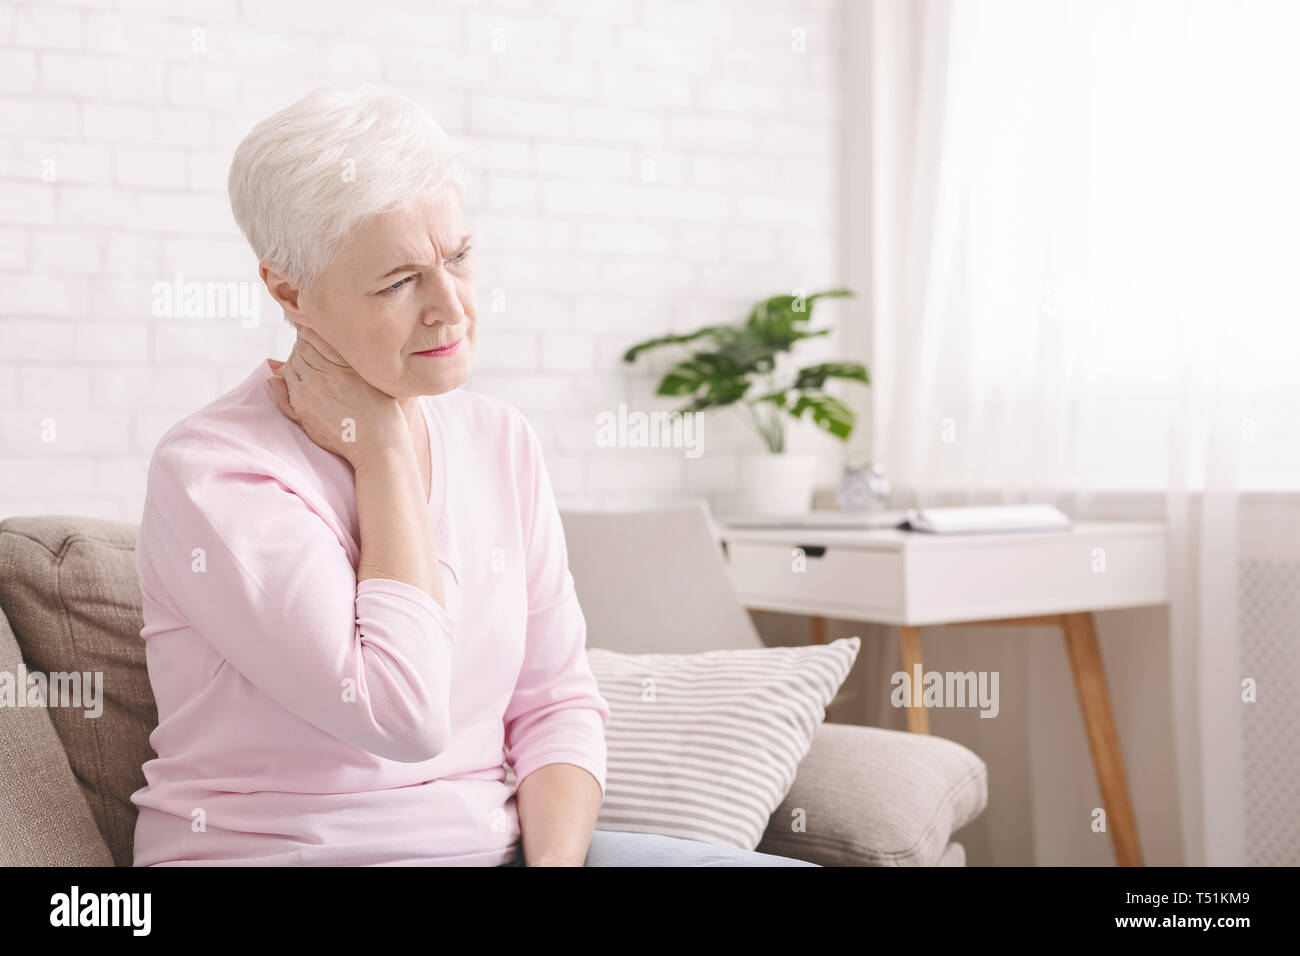 Mature woman suffering from backache at home, massaging neck with hand, feeling exhausted, empty space - Stock Image